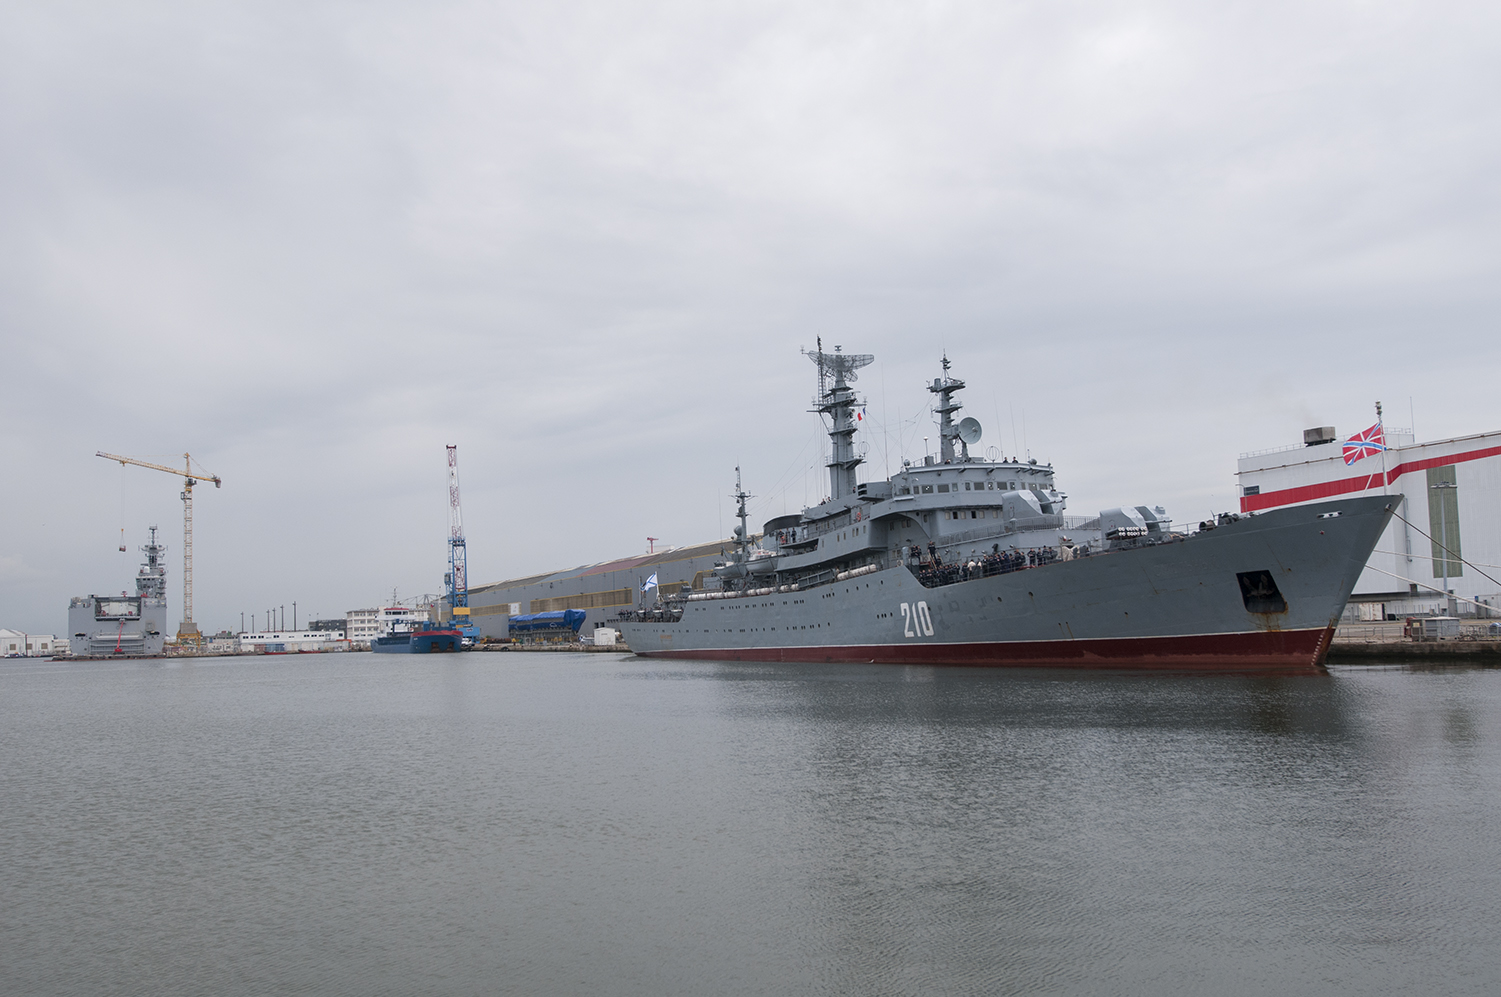 The Smolny and the Vladivostock docked in the port of Saint Nazaire, France.